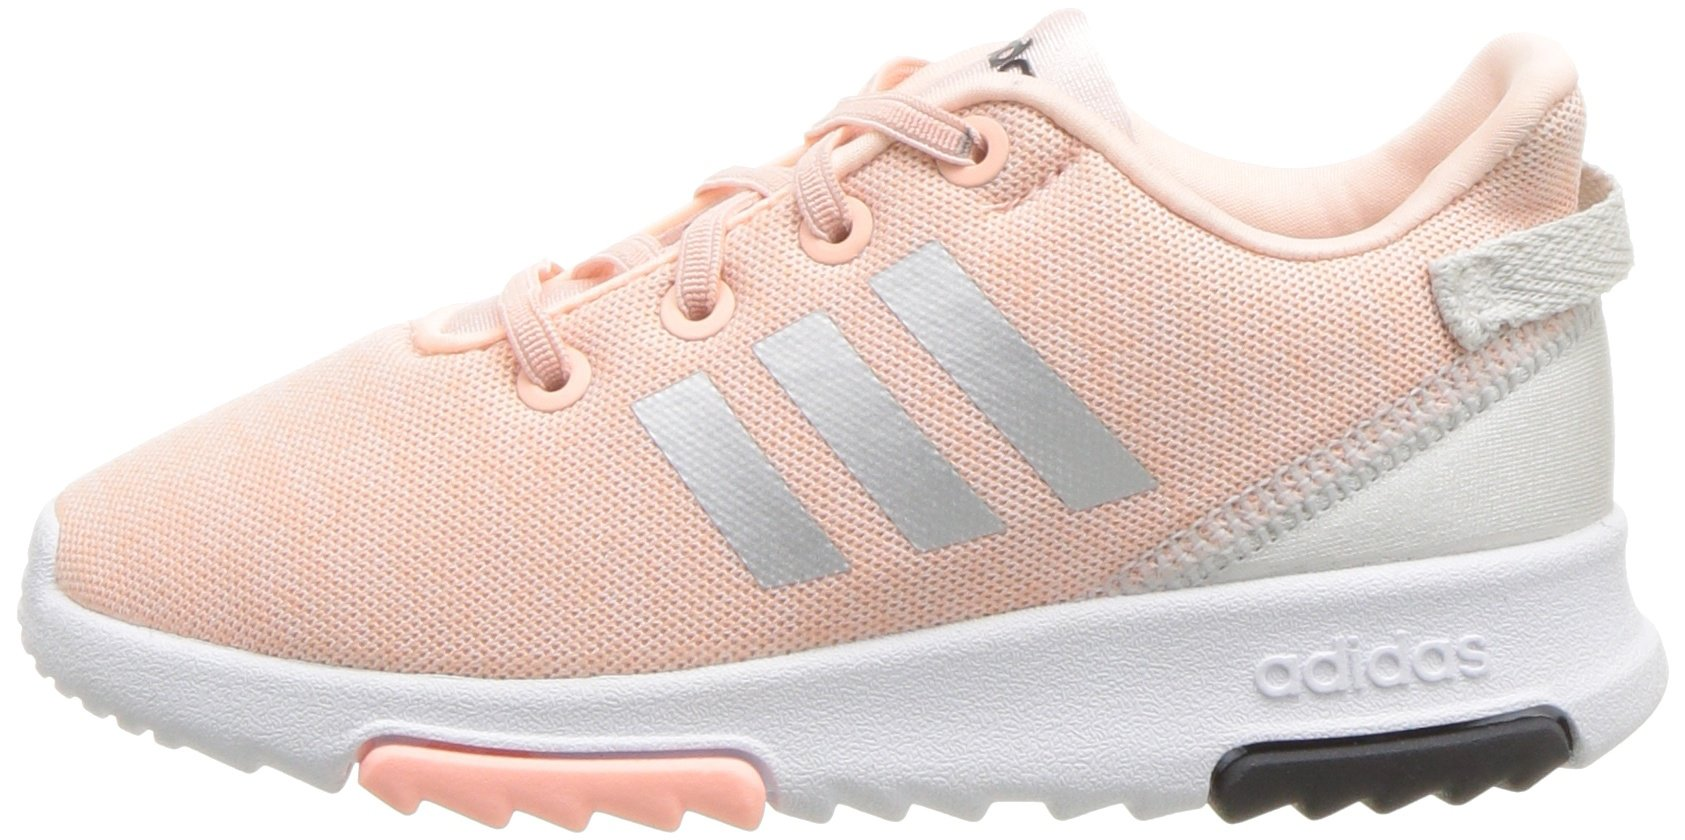 adidas Kids CF Racer TR Running Shoe, Haze Coral/Metallic Silver/White, 4K M US Toddler by adidas (Image #5)